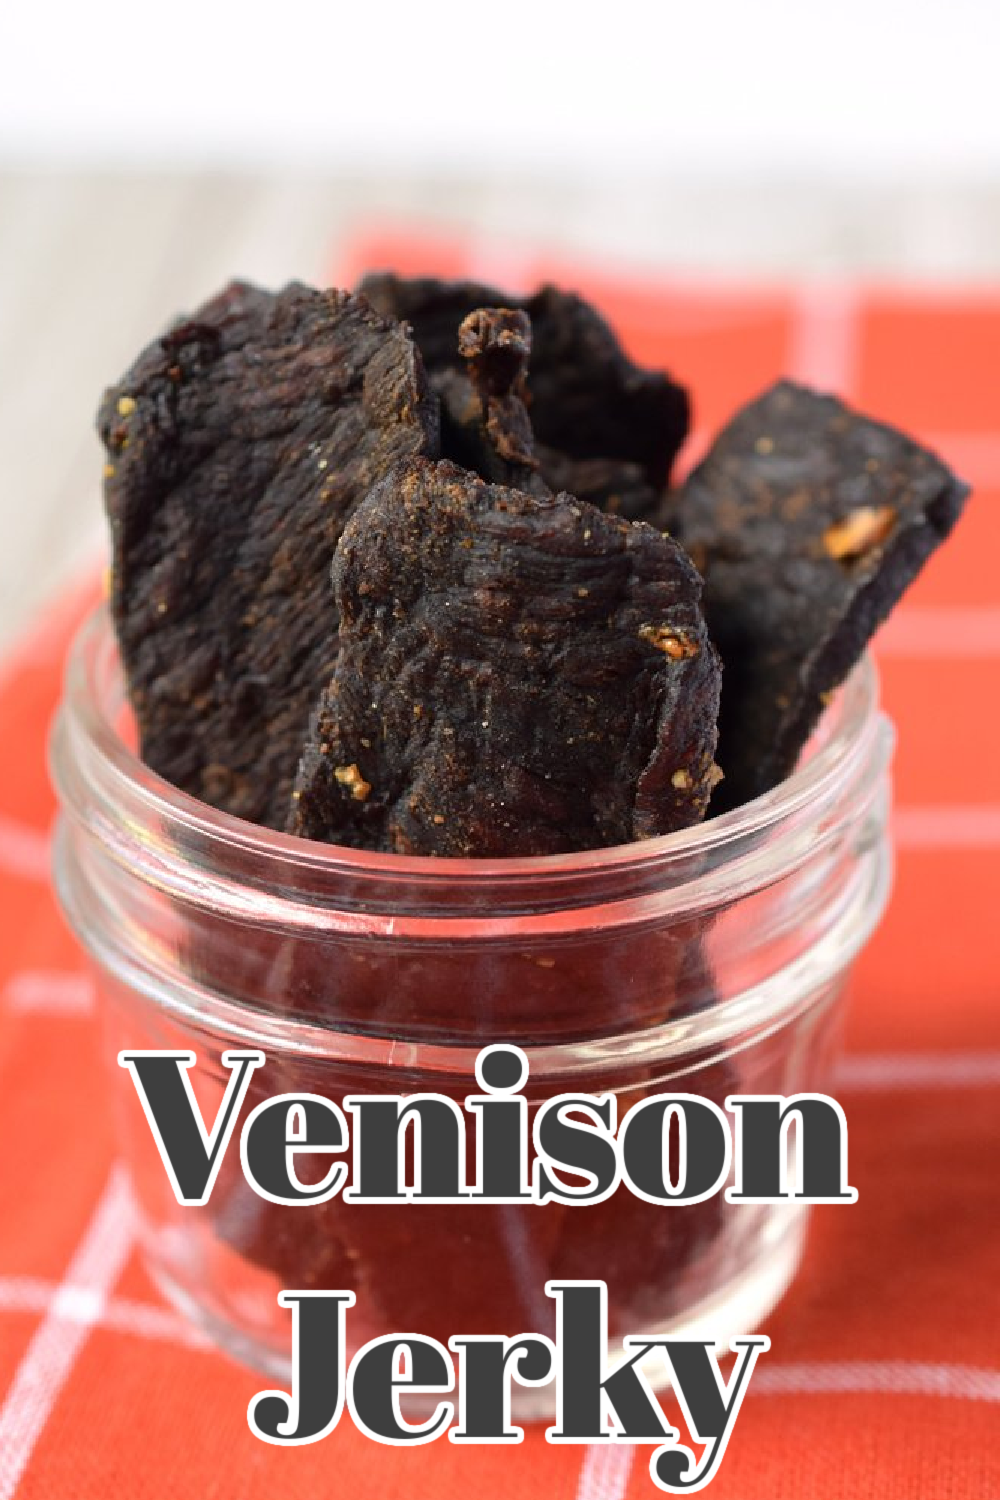 Venison Jerky - Make venison jerky right at home with this step-by-step guide. Such a great way to use up extra venison and make a delicious snack. Homemade Venison Jerky | Venison Jerky Recipe | Deer Jerky Recipe